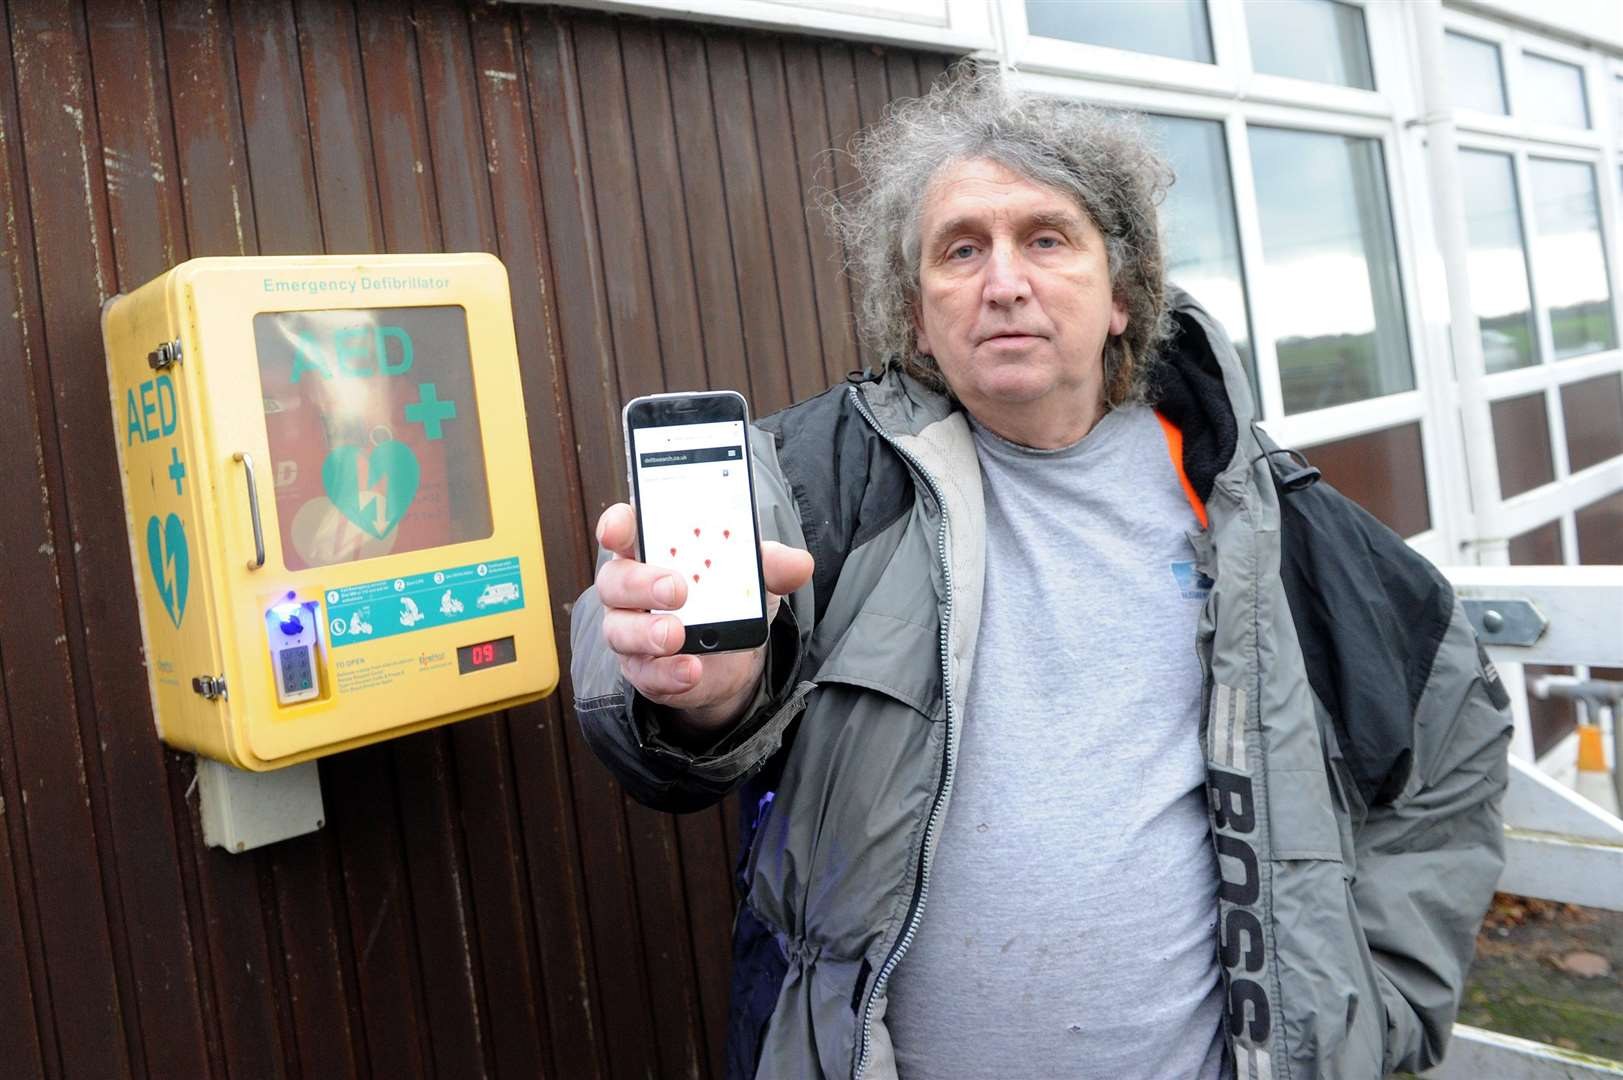 Simon Herbert has set up a website so that you can locate the exact location of a defibrillator in East Anglia. PICTURE: Mecha Morton.